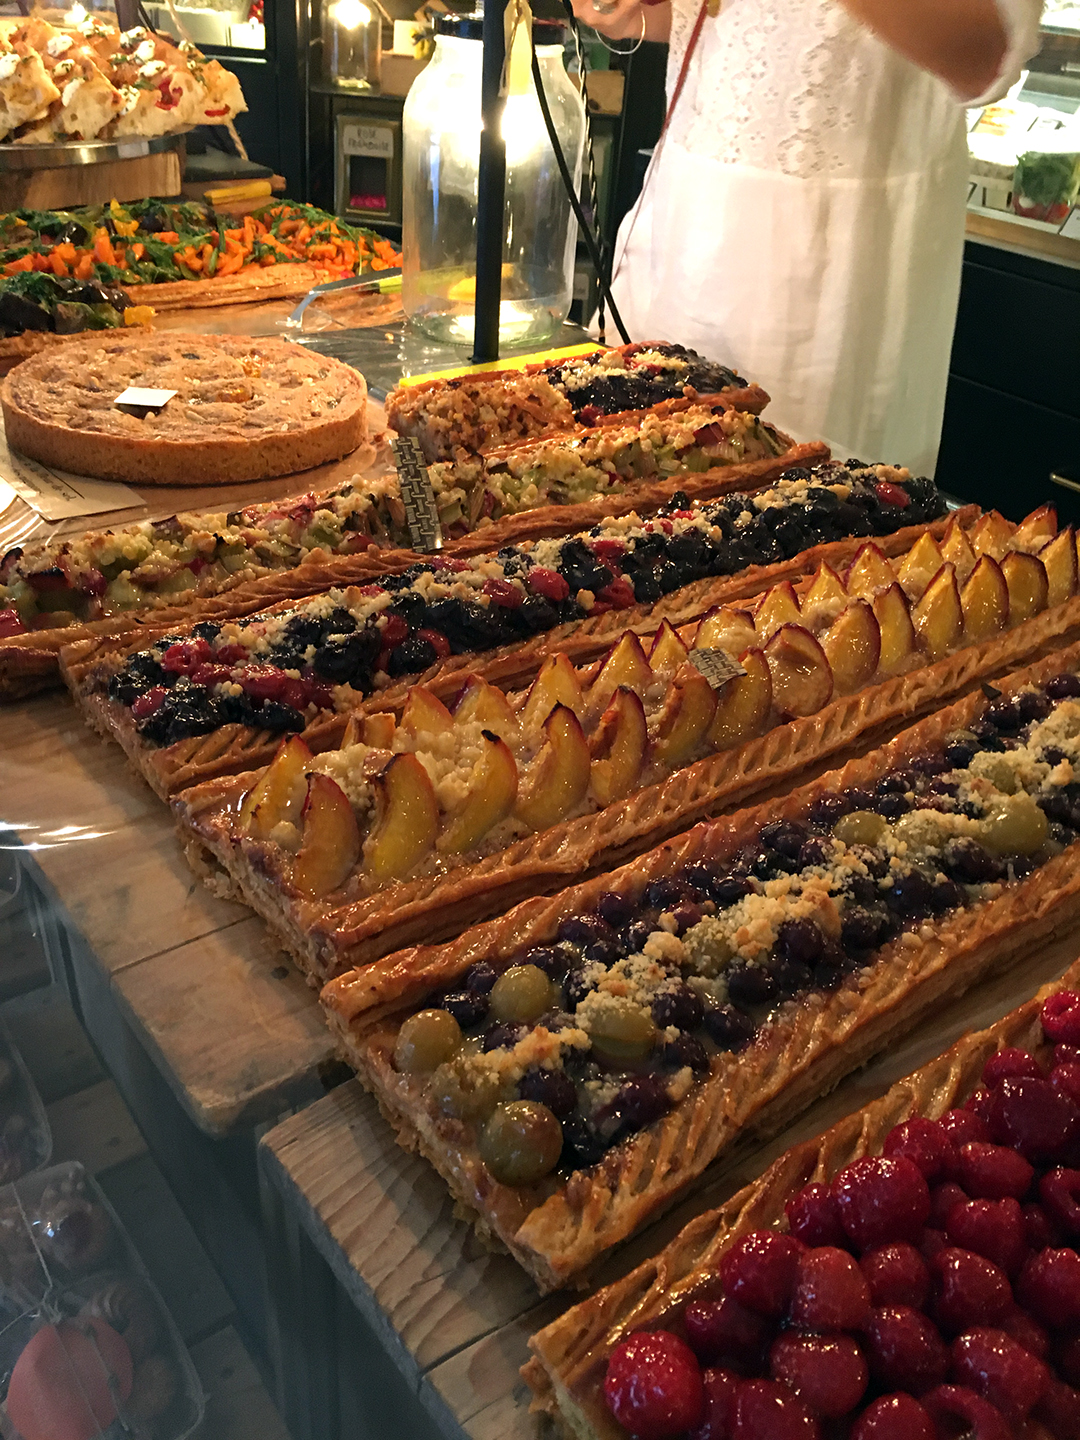 The beautiful tarts at Jouvaud. They cut off as much for you as you like. So civilized.